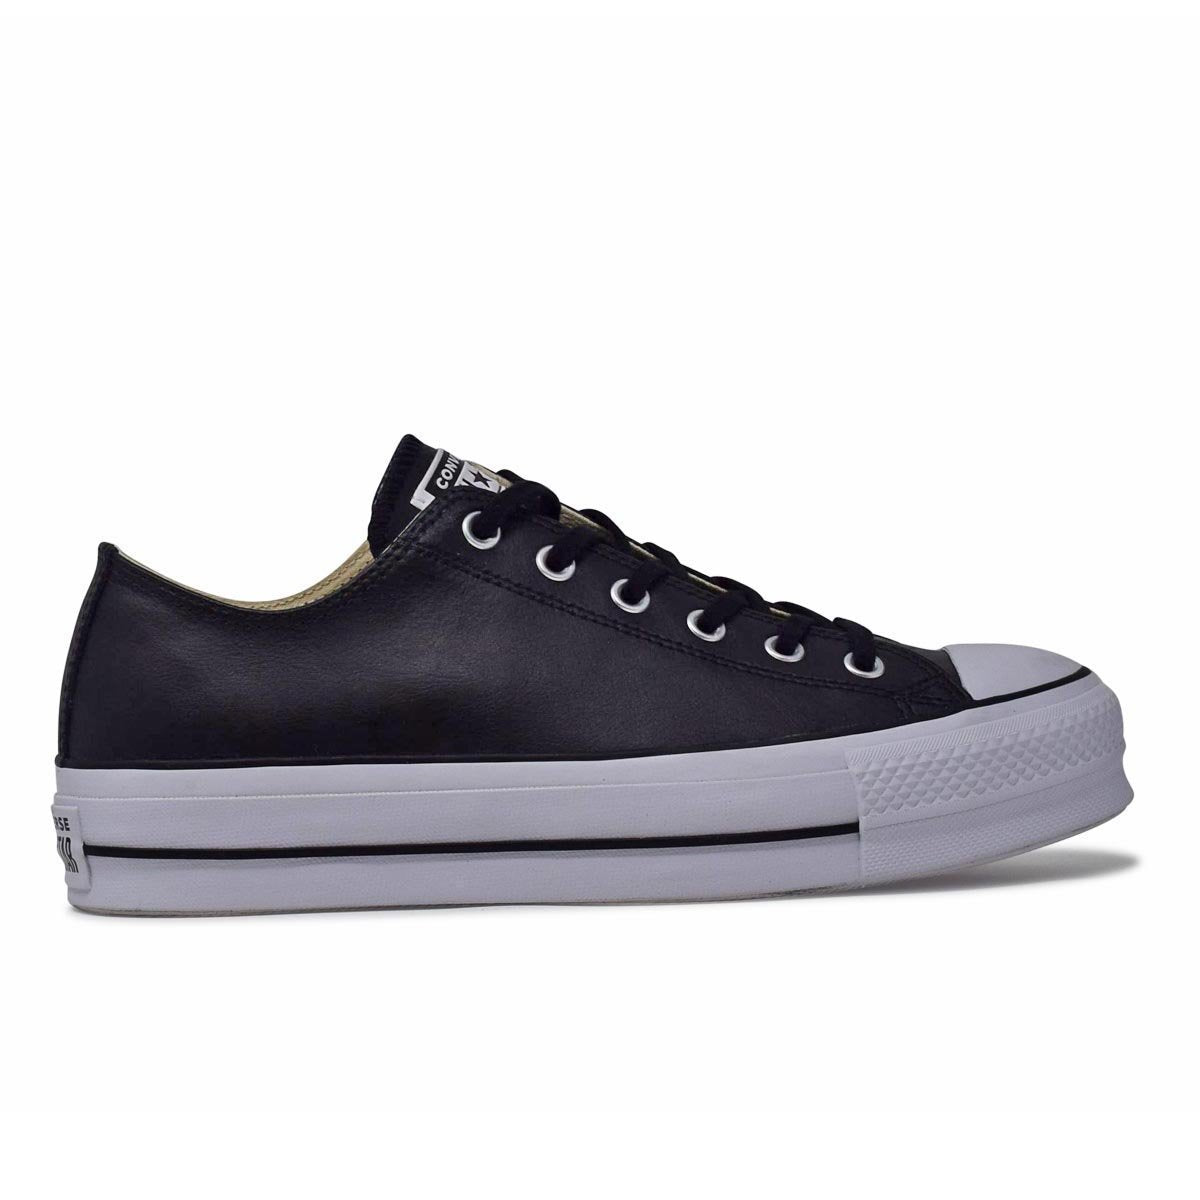 Chuck Taylor All Star Lift Leather Black